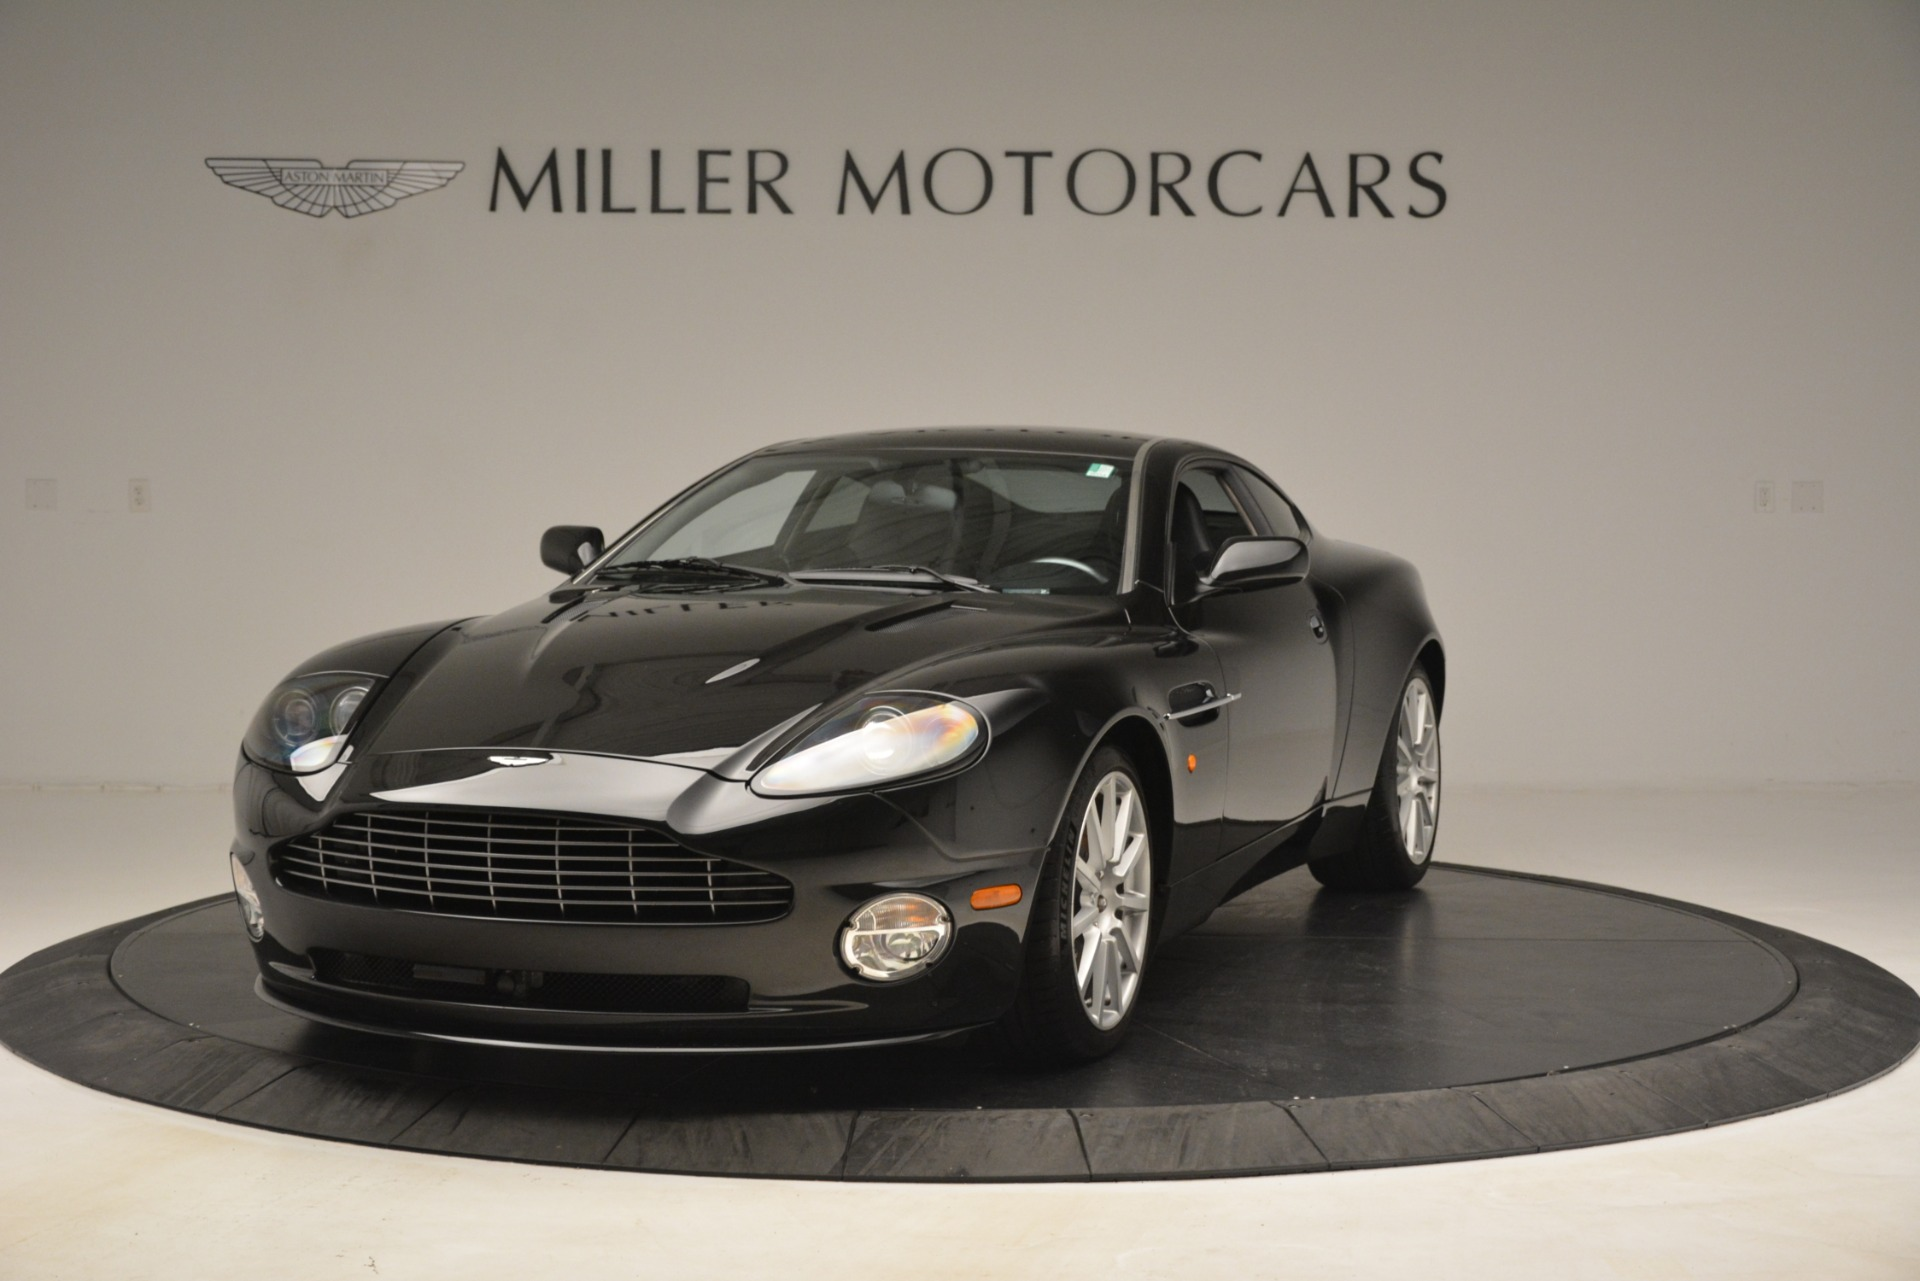 Used 2005 Aston Martin V12 Vanquish S Coupe For Sale In Westport, CT 3218_p2